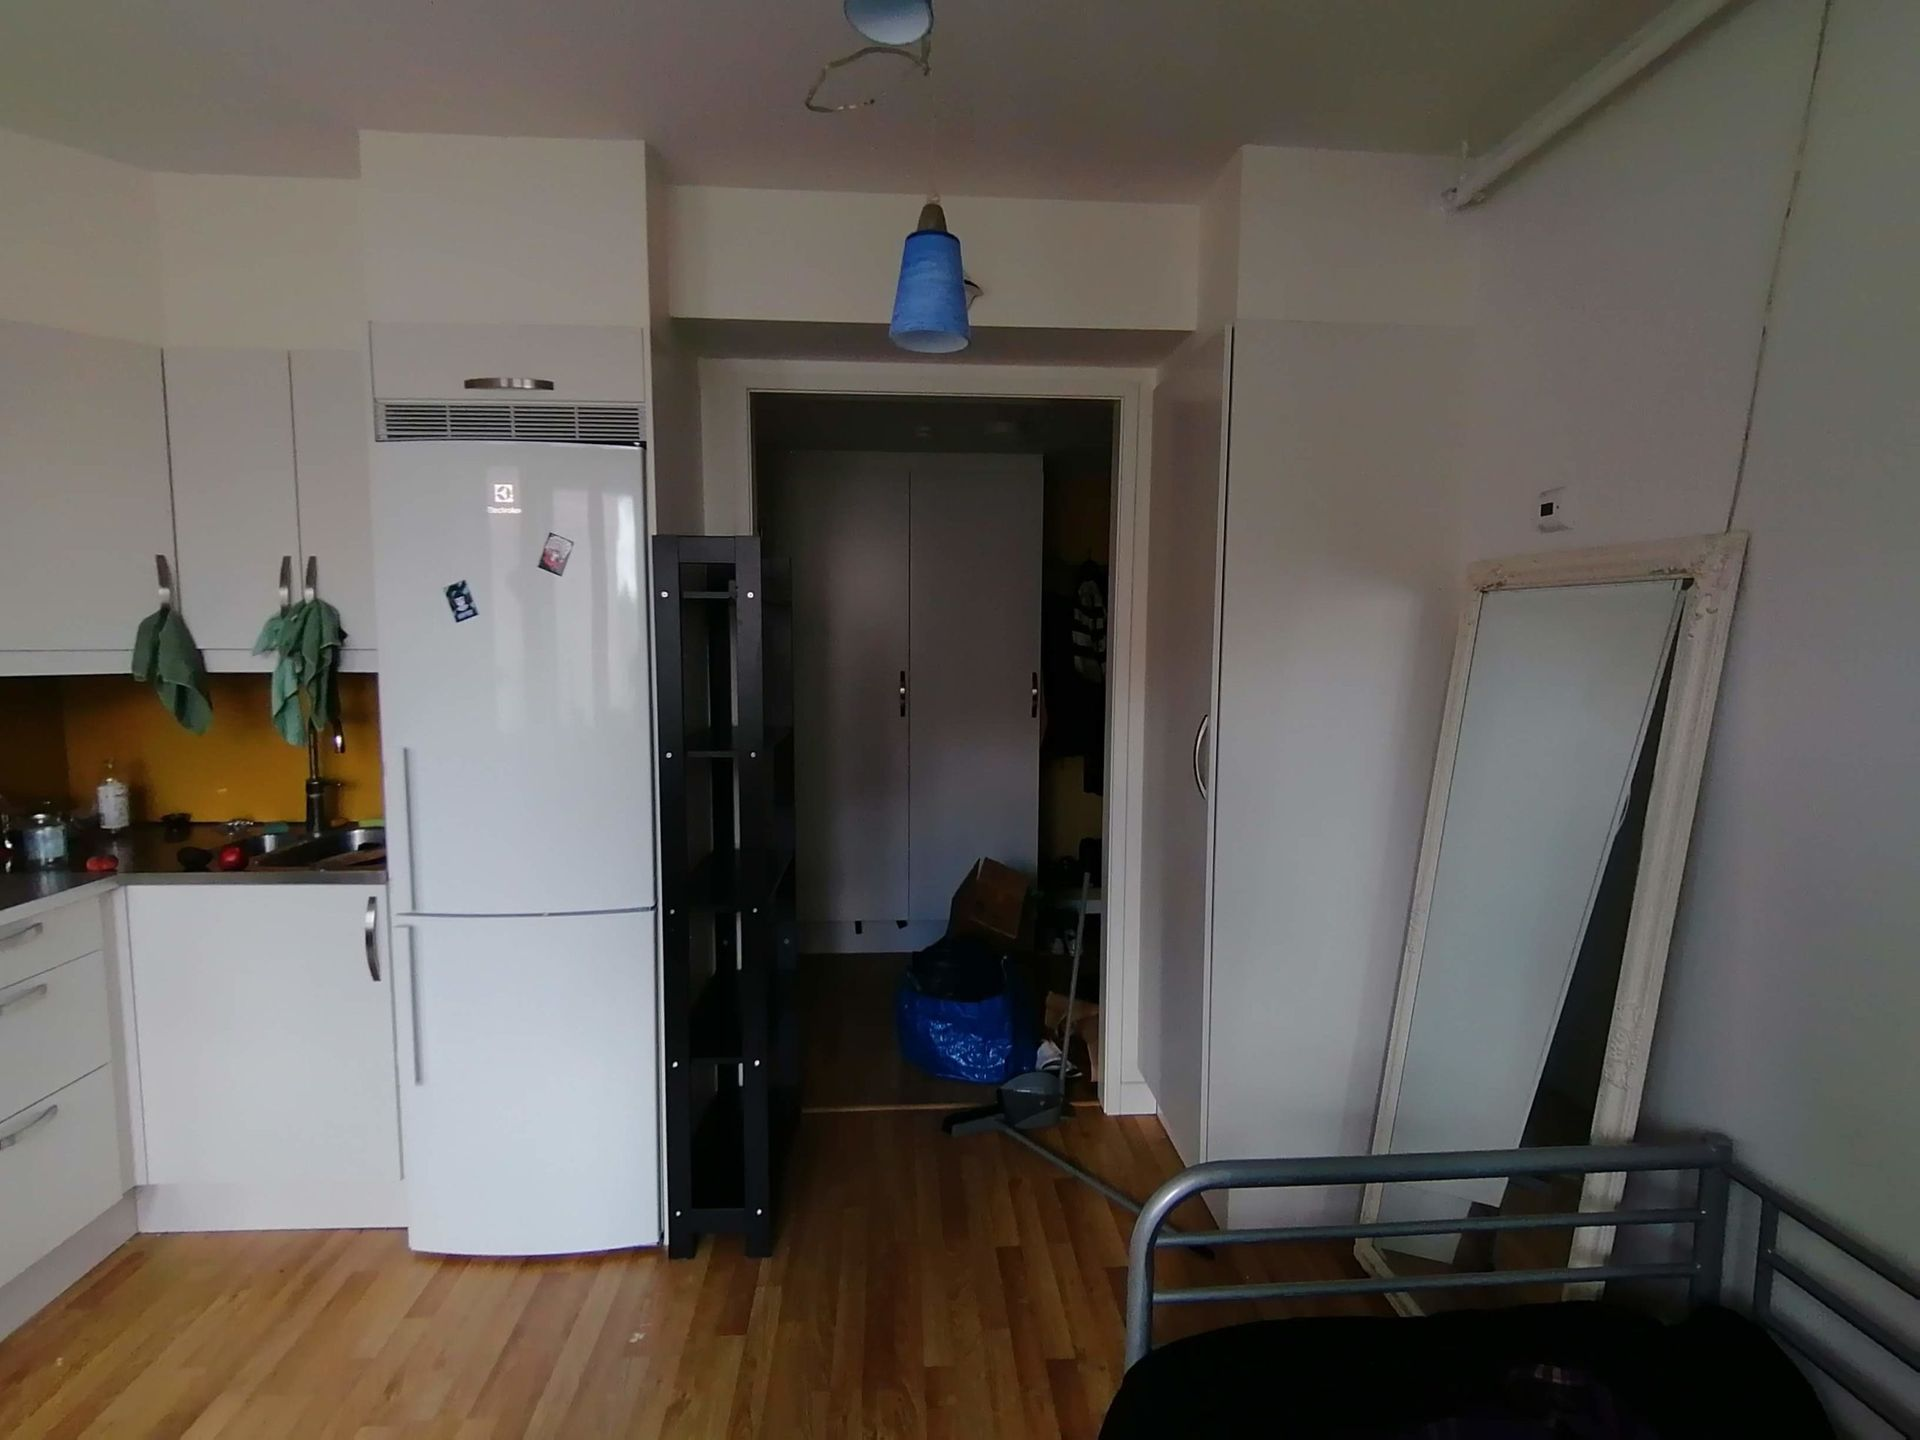 A door frame next to a fridge in an apartment